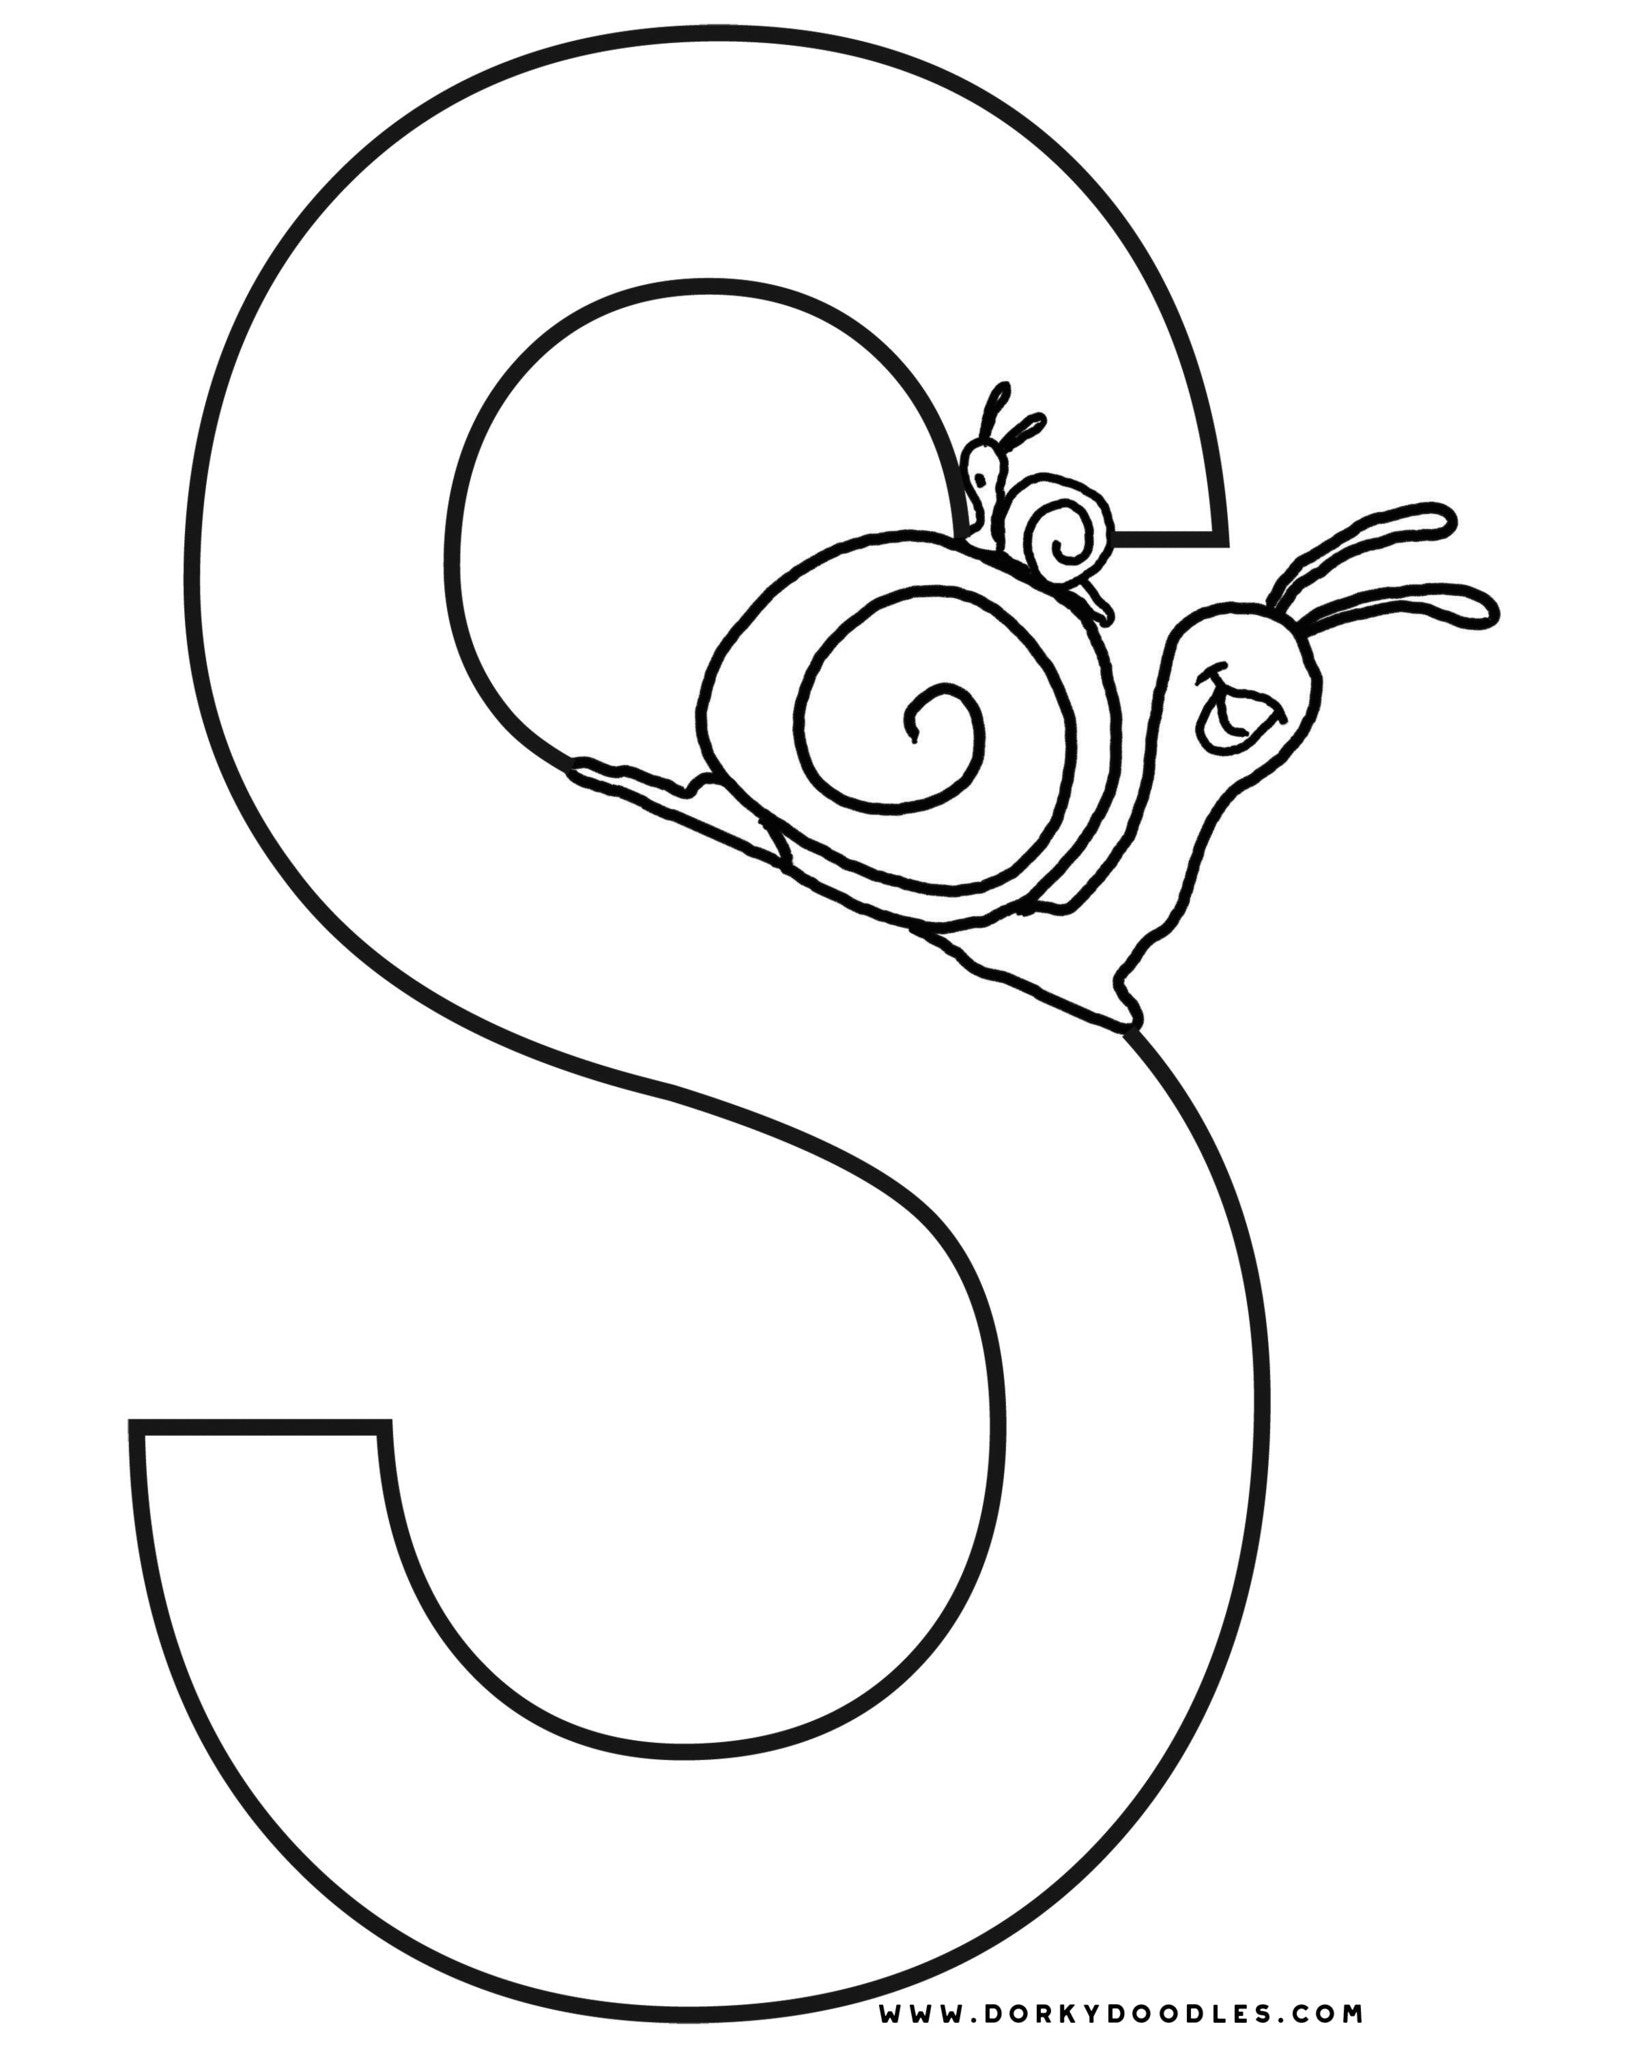 letter s coloring and writing worksheets  u2013 dorky doodles